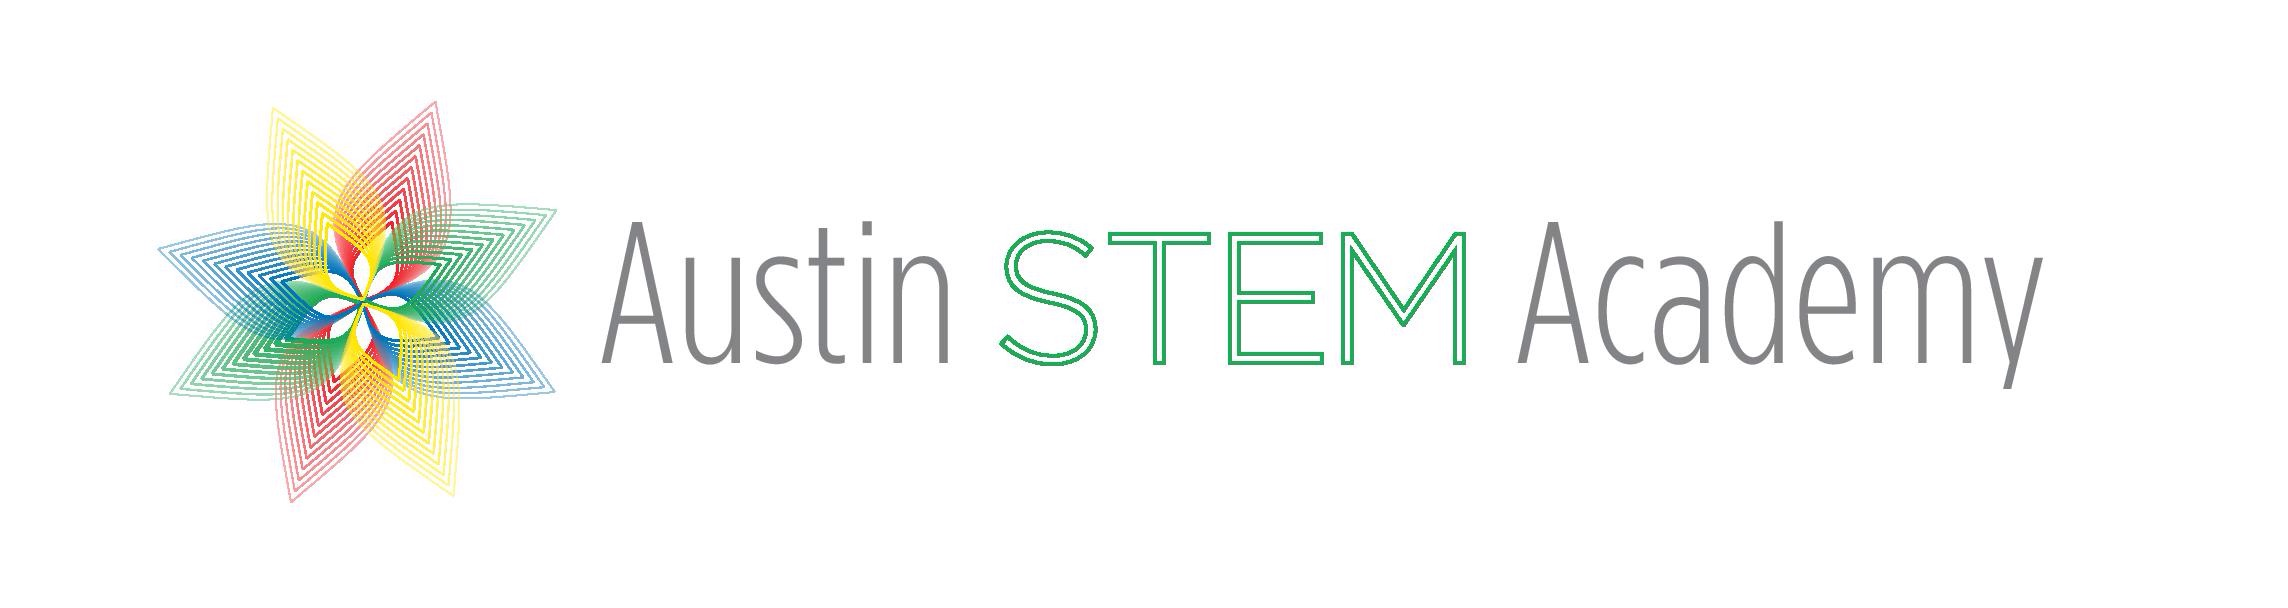 Austin STEM Academy | Free Fun in Austin